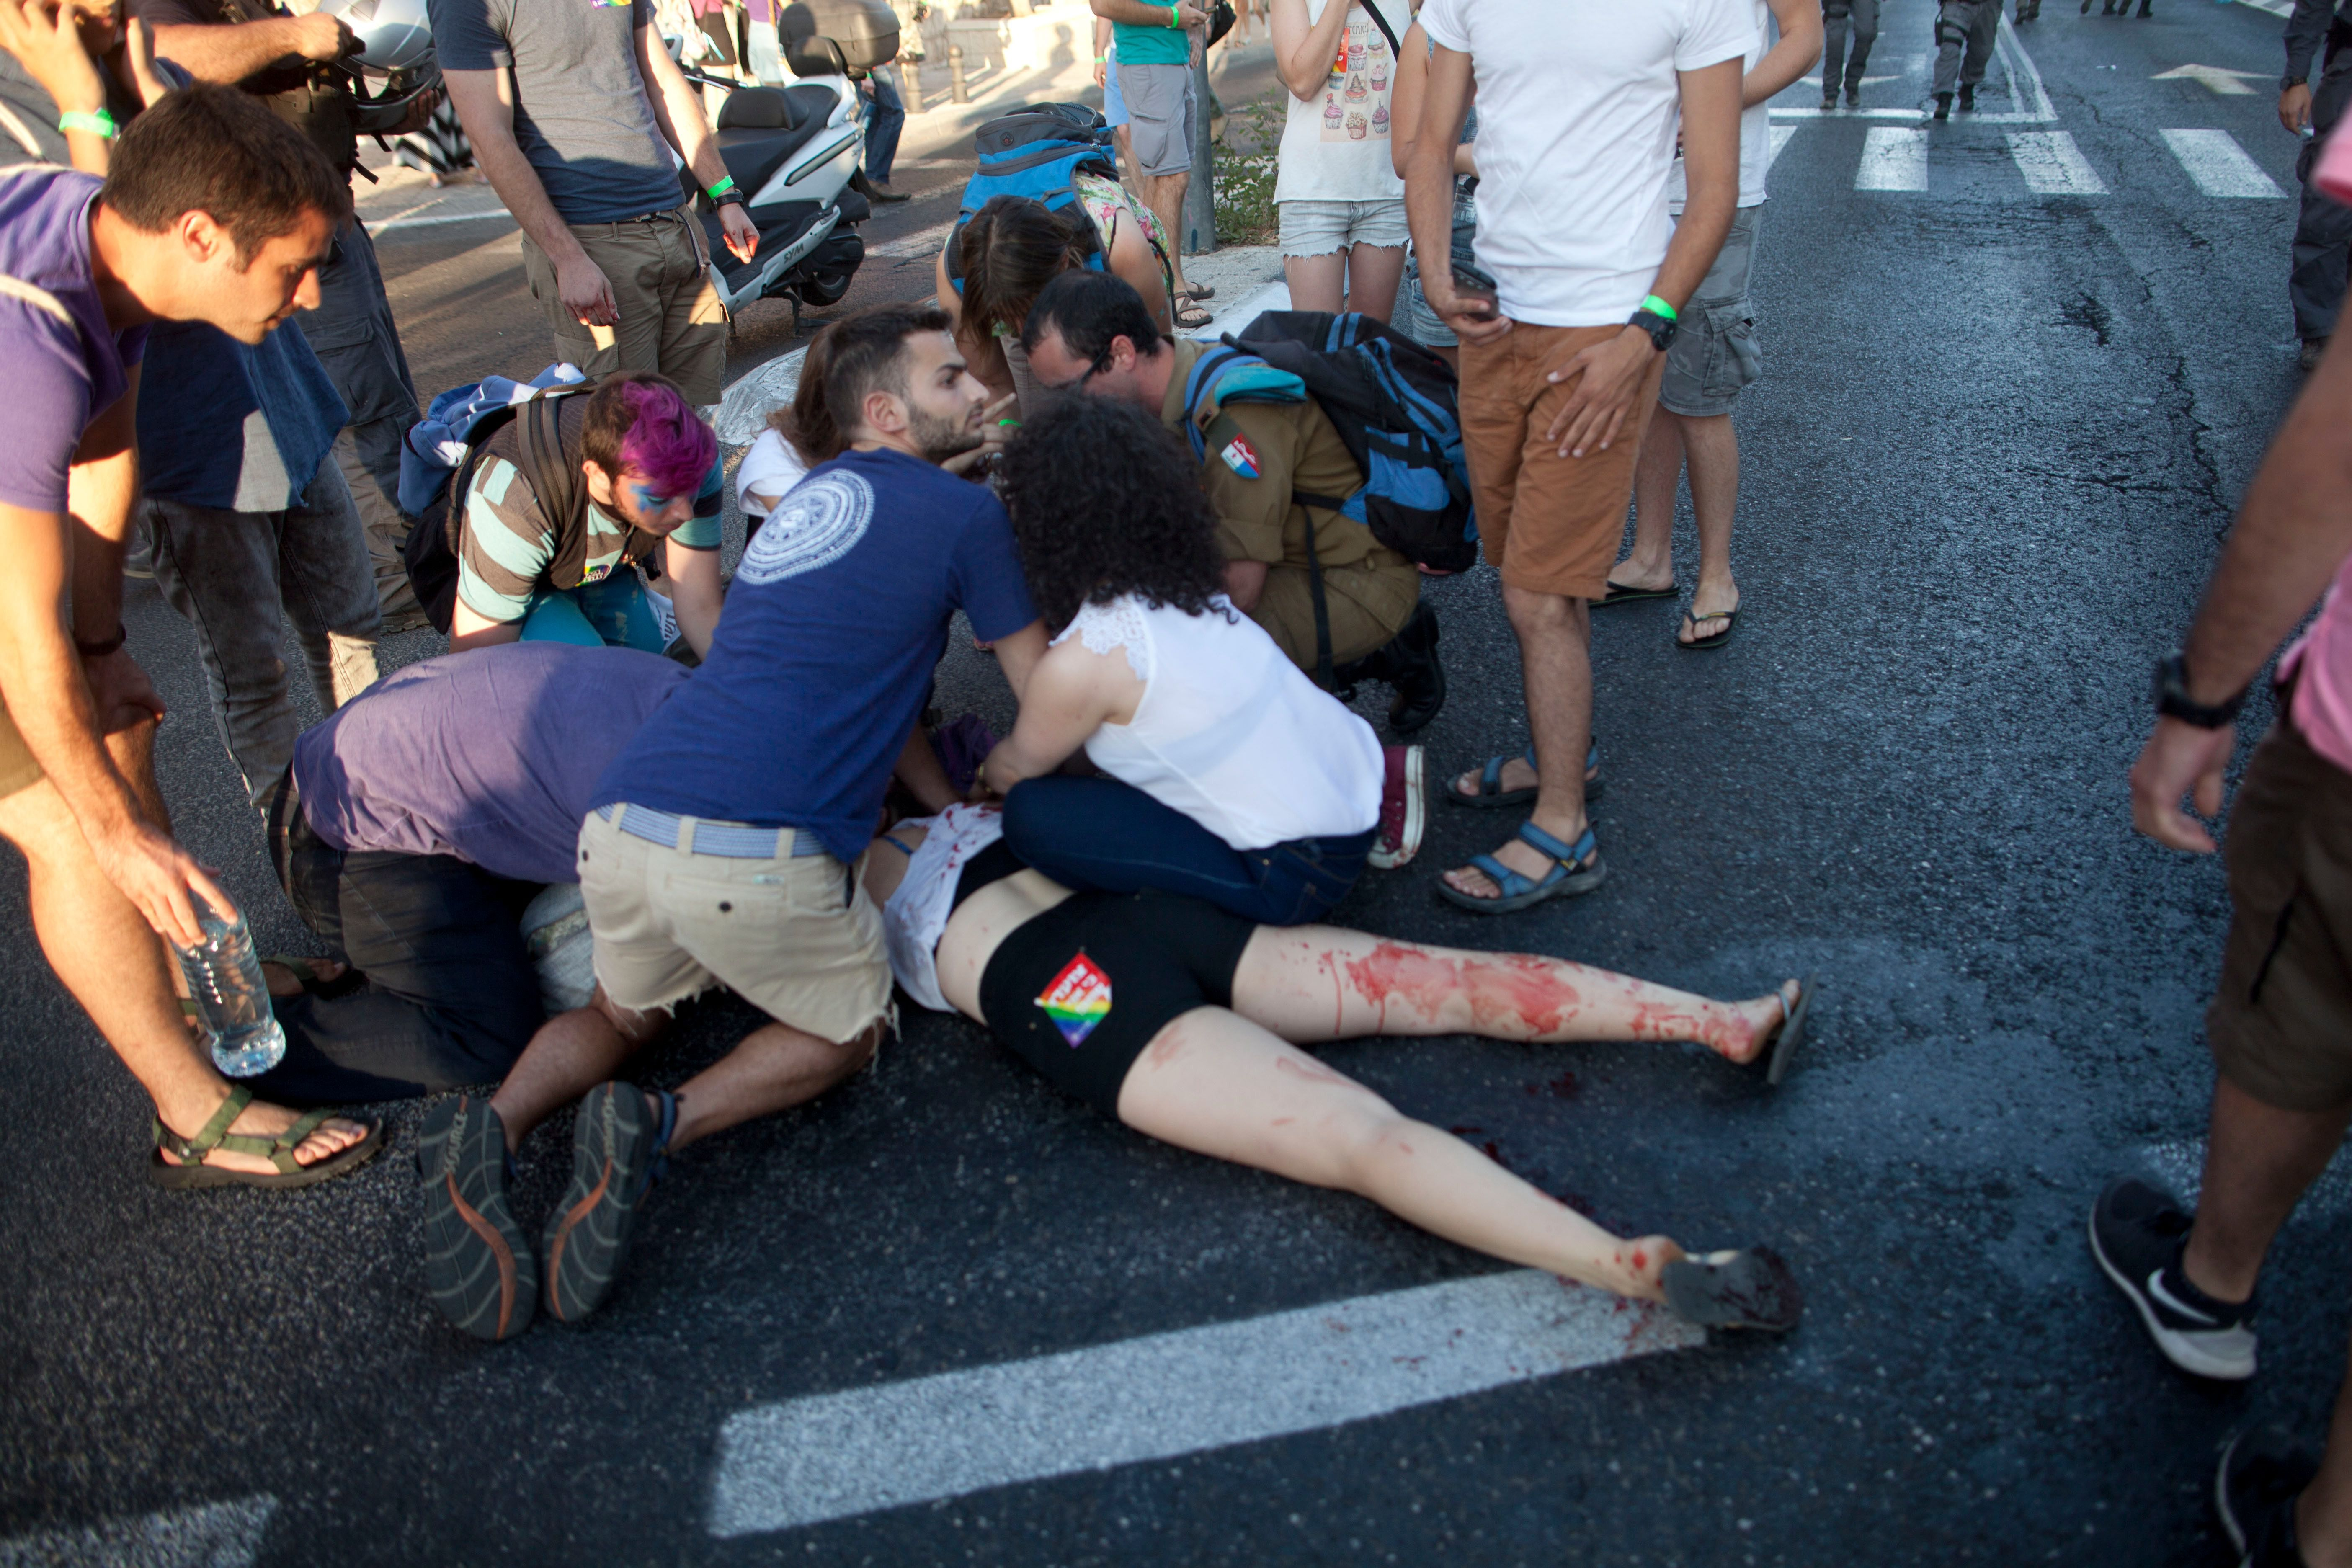 The sights after the stabbing at last week's Pride Parade in Jerusalem